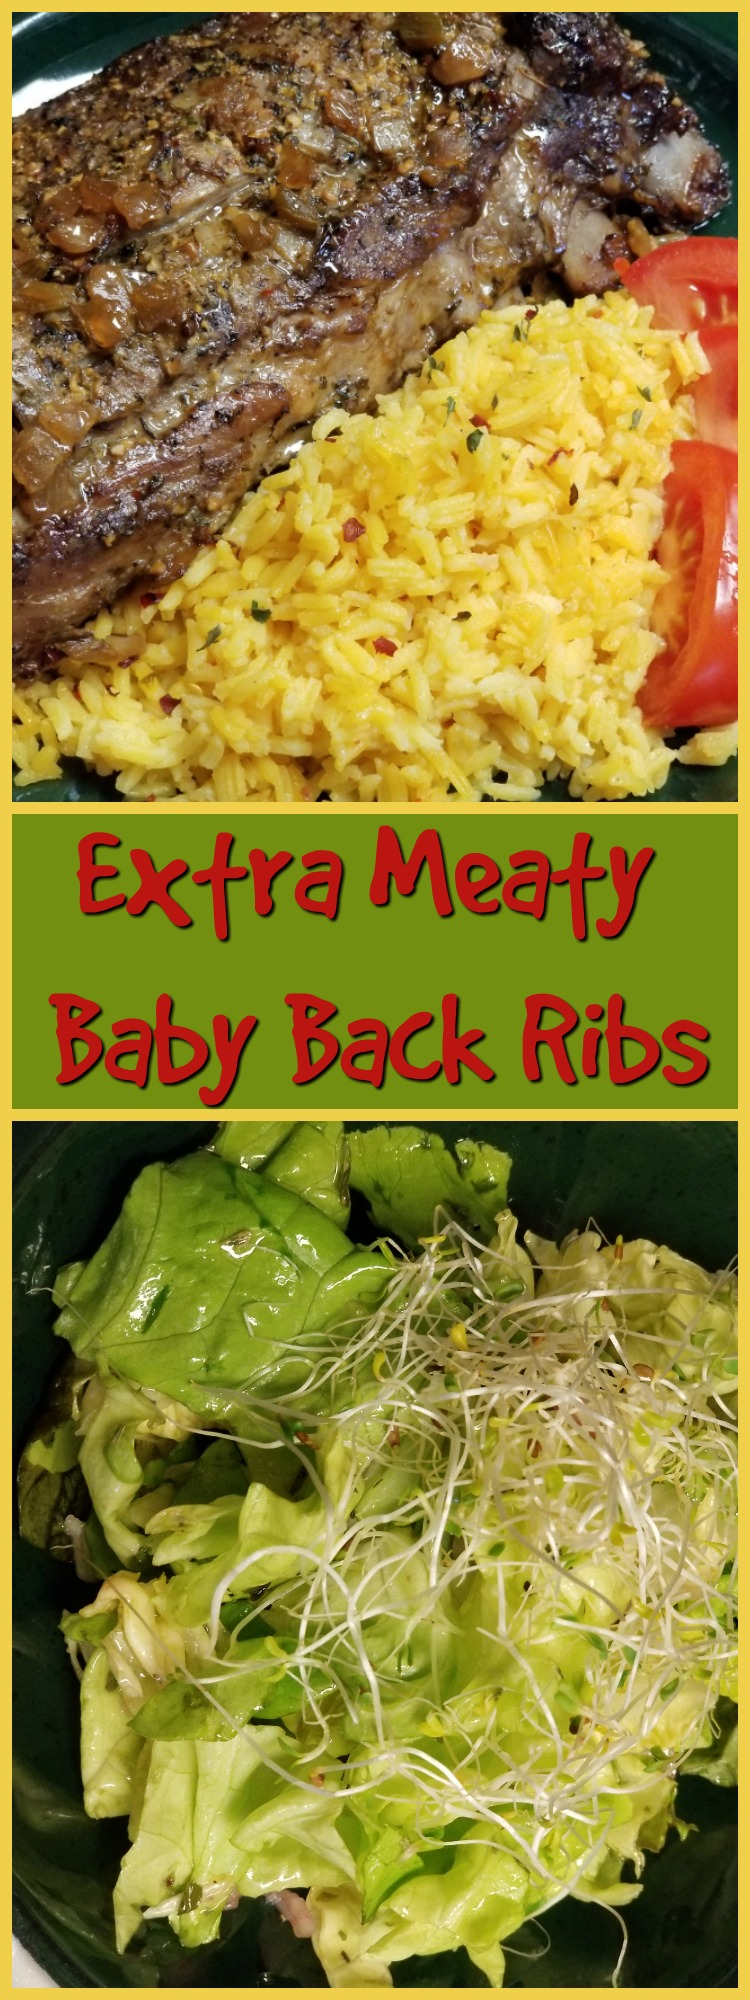 """When I say this meal is """"set it and forget it"""" easy, I mean it. Everyone loves slow cooked, fall off the bone tender and extra meaty baby back ribs so what could be easier than a slight variation on the regular barbecued ribs? Simple seasonings, a foil cover and voilà! Add veggies and a salad. Done."""